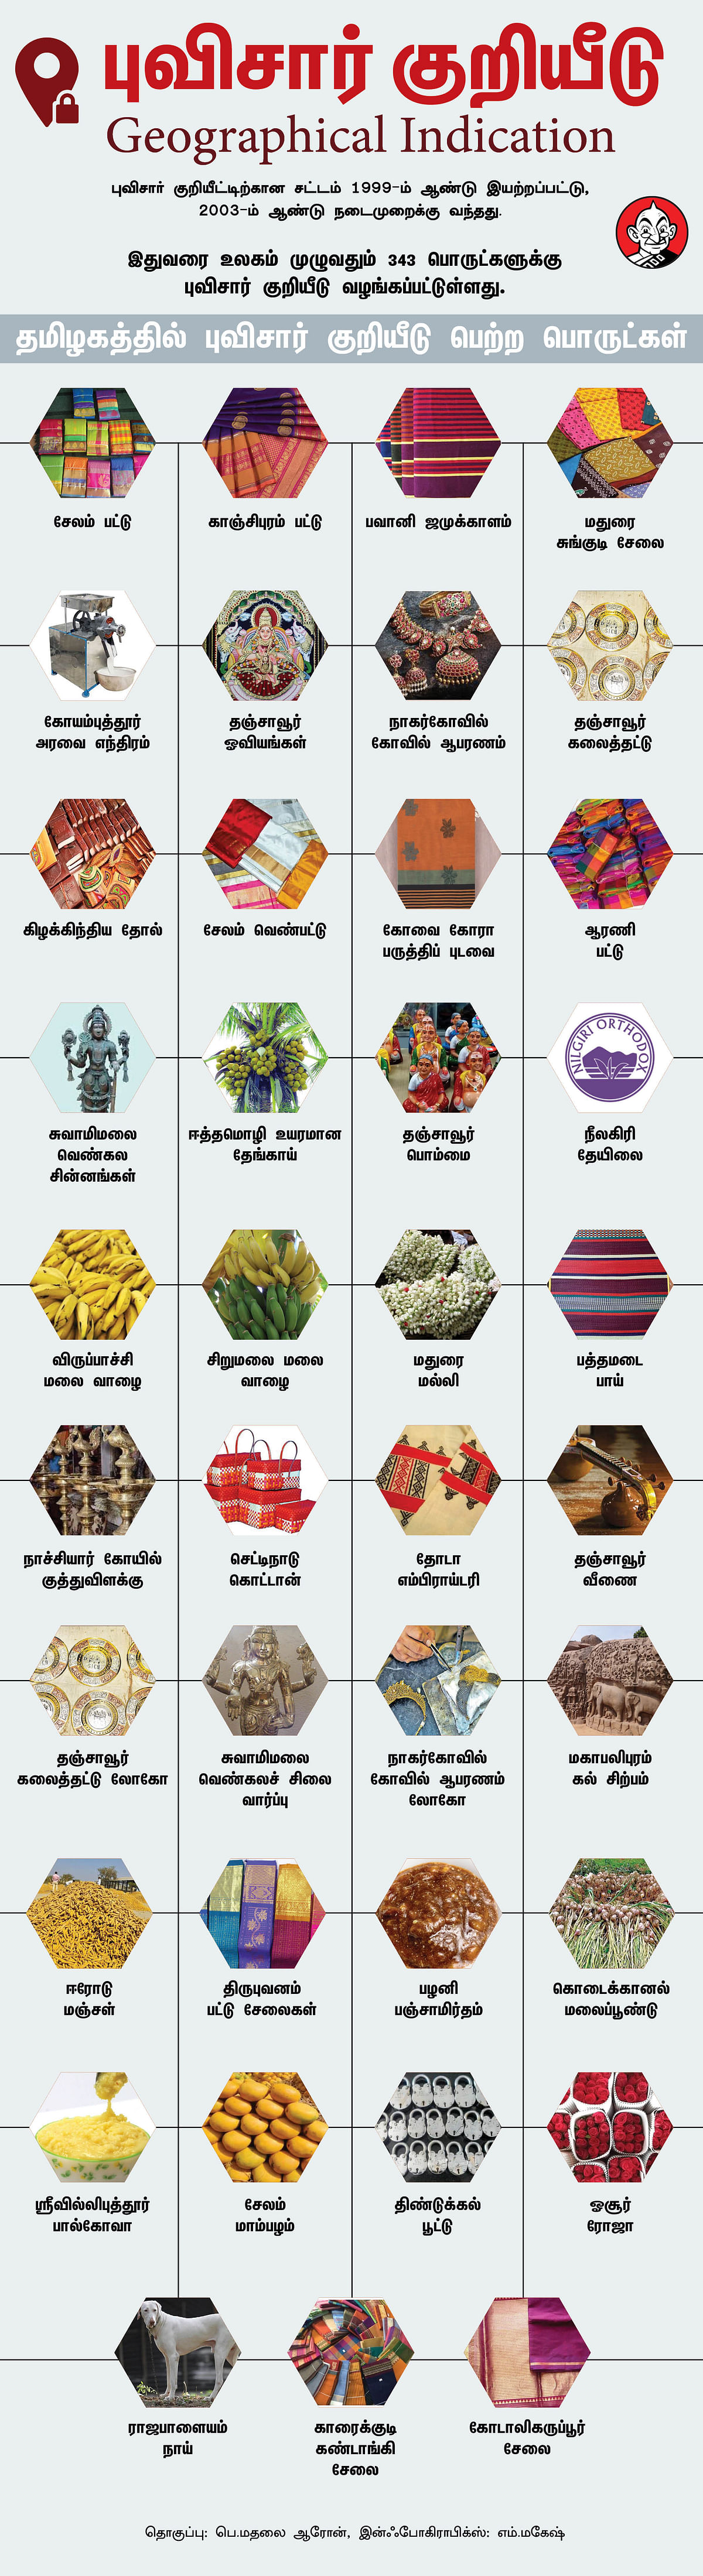 Geographical Indications